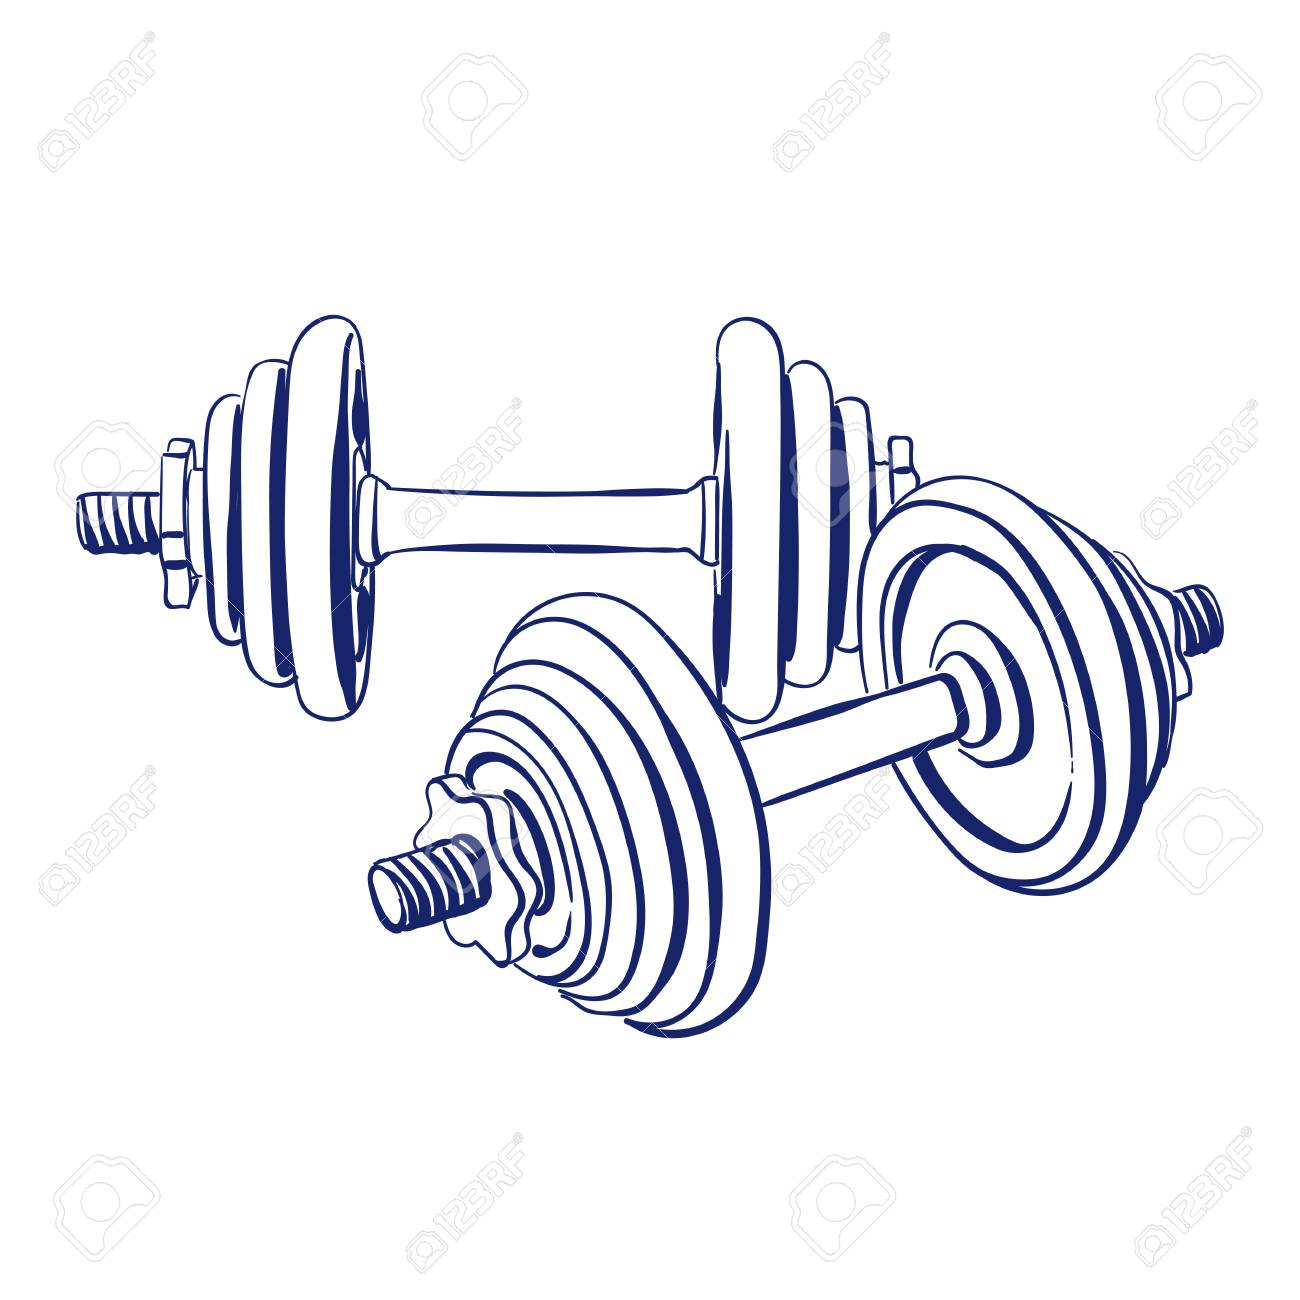 Barbell clipart weight rack. Weights drawing at getdrawings